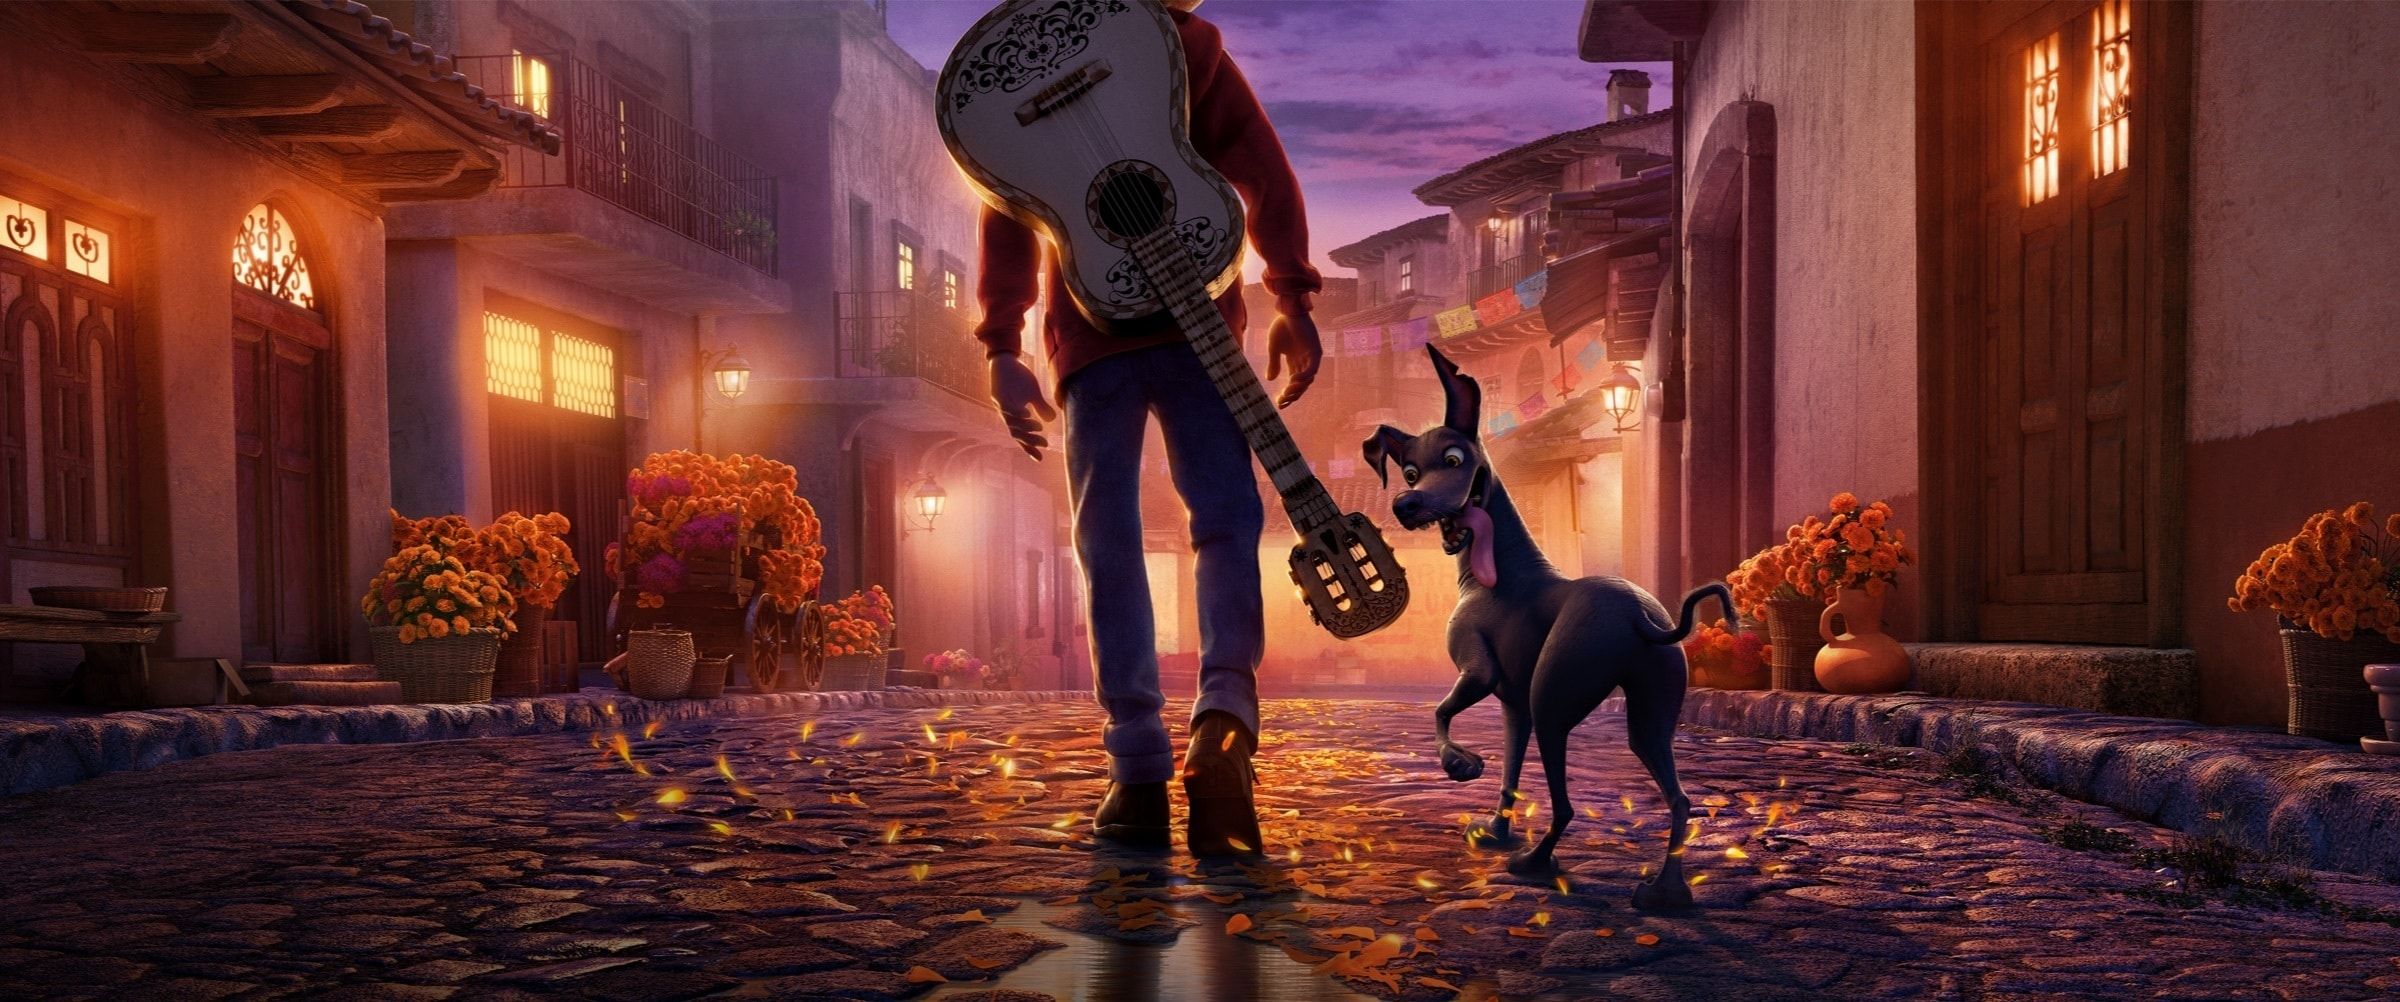 Coco | In cinemas 24 November 2017